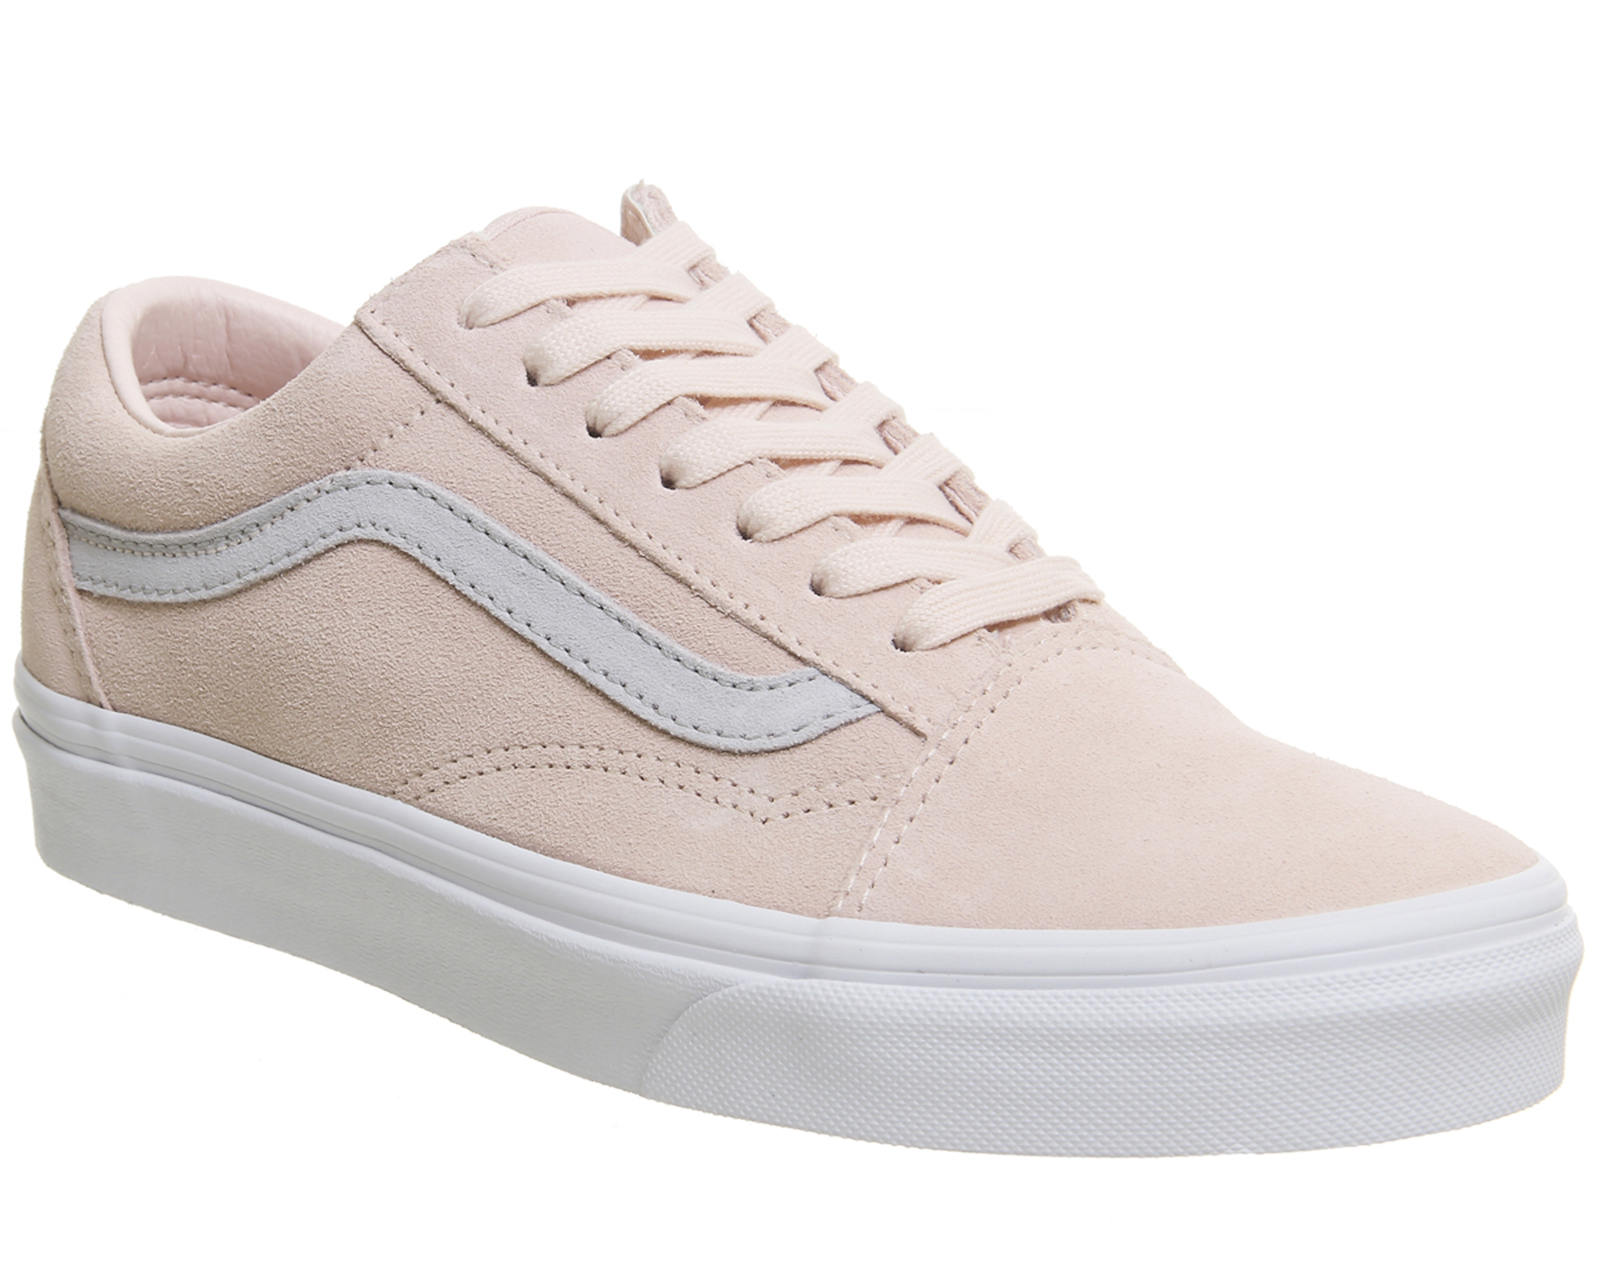 677bd5fc4d34 Mens Vans Old Skool Trainers PALE PINK GREY EXCLUSIVE Trainers Shoes ...